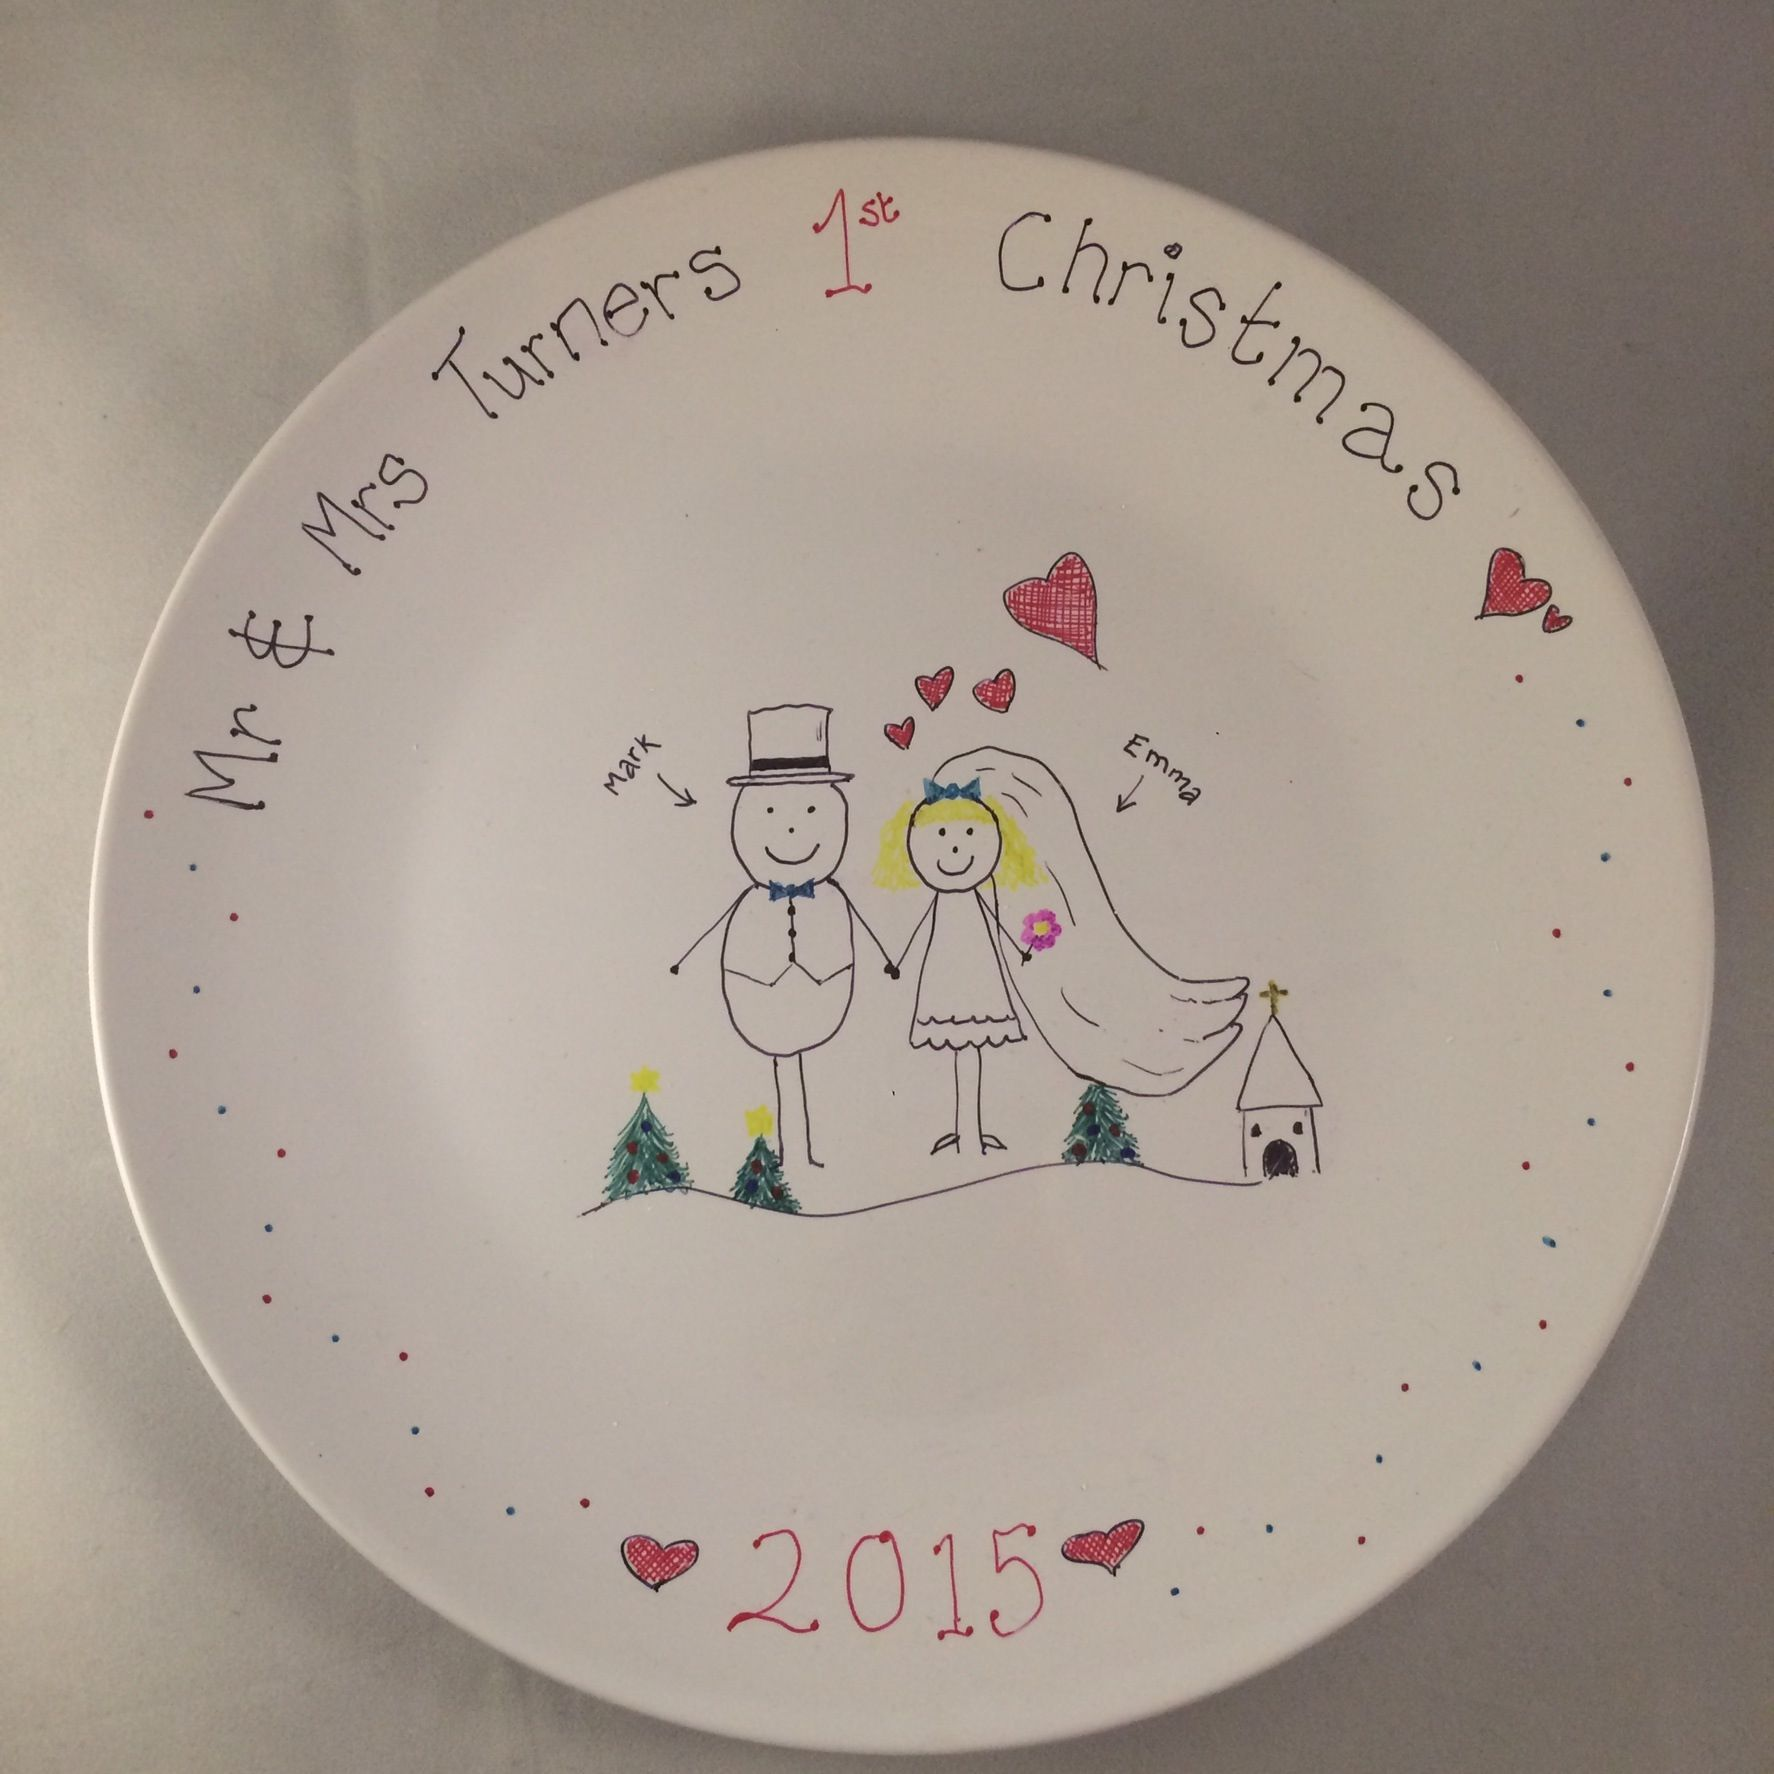 Decorative Plate For The Bride And Grooms First Christmas As